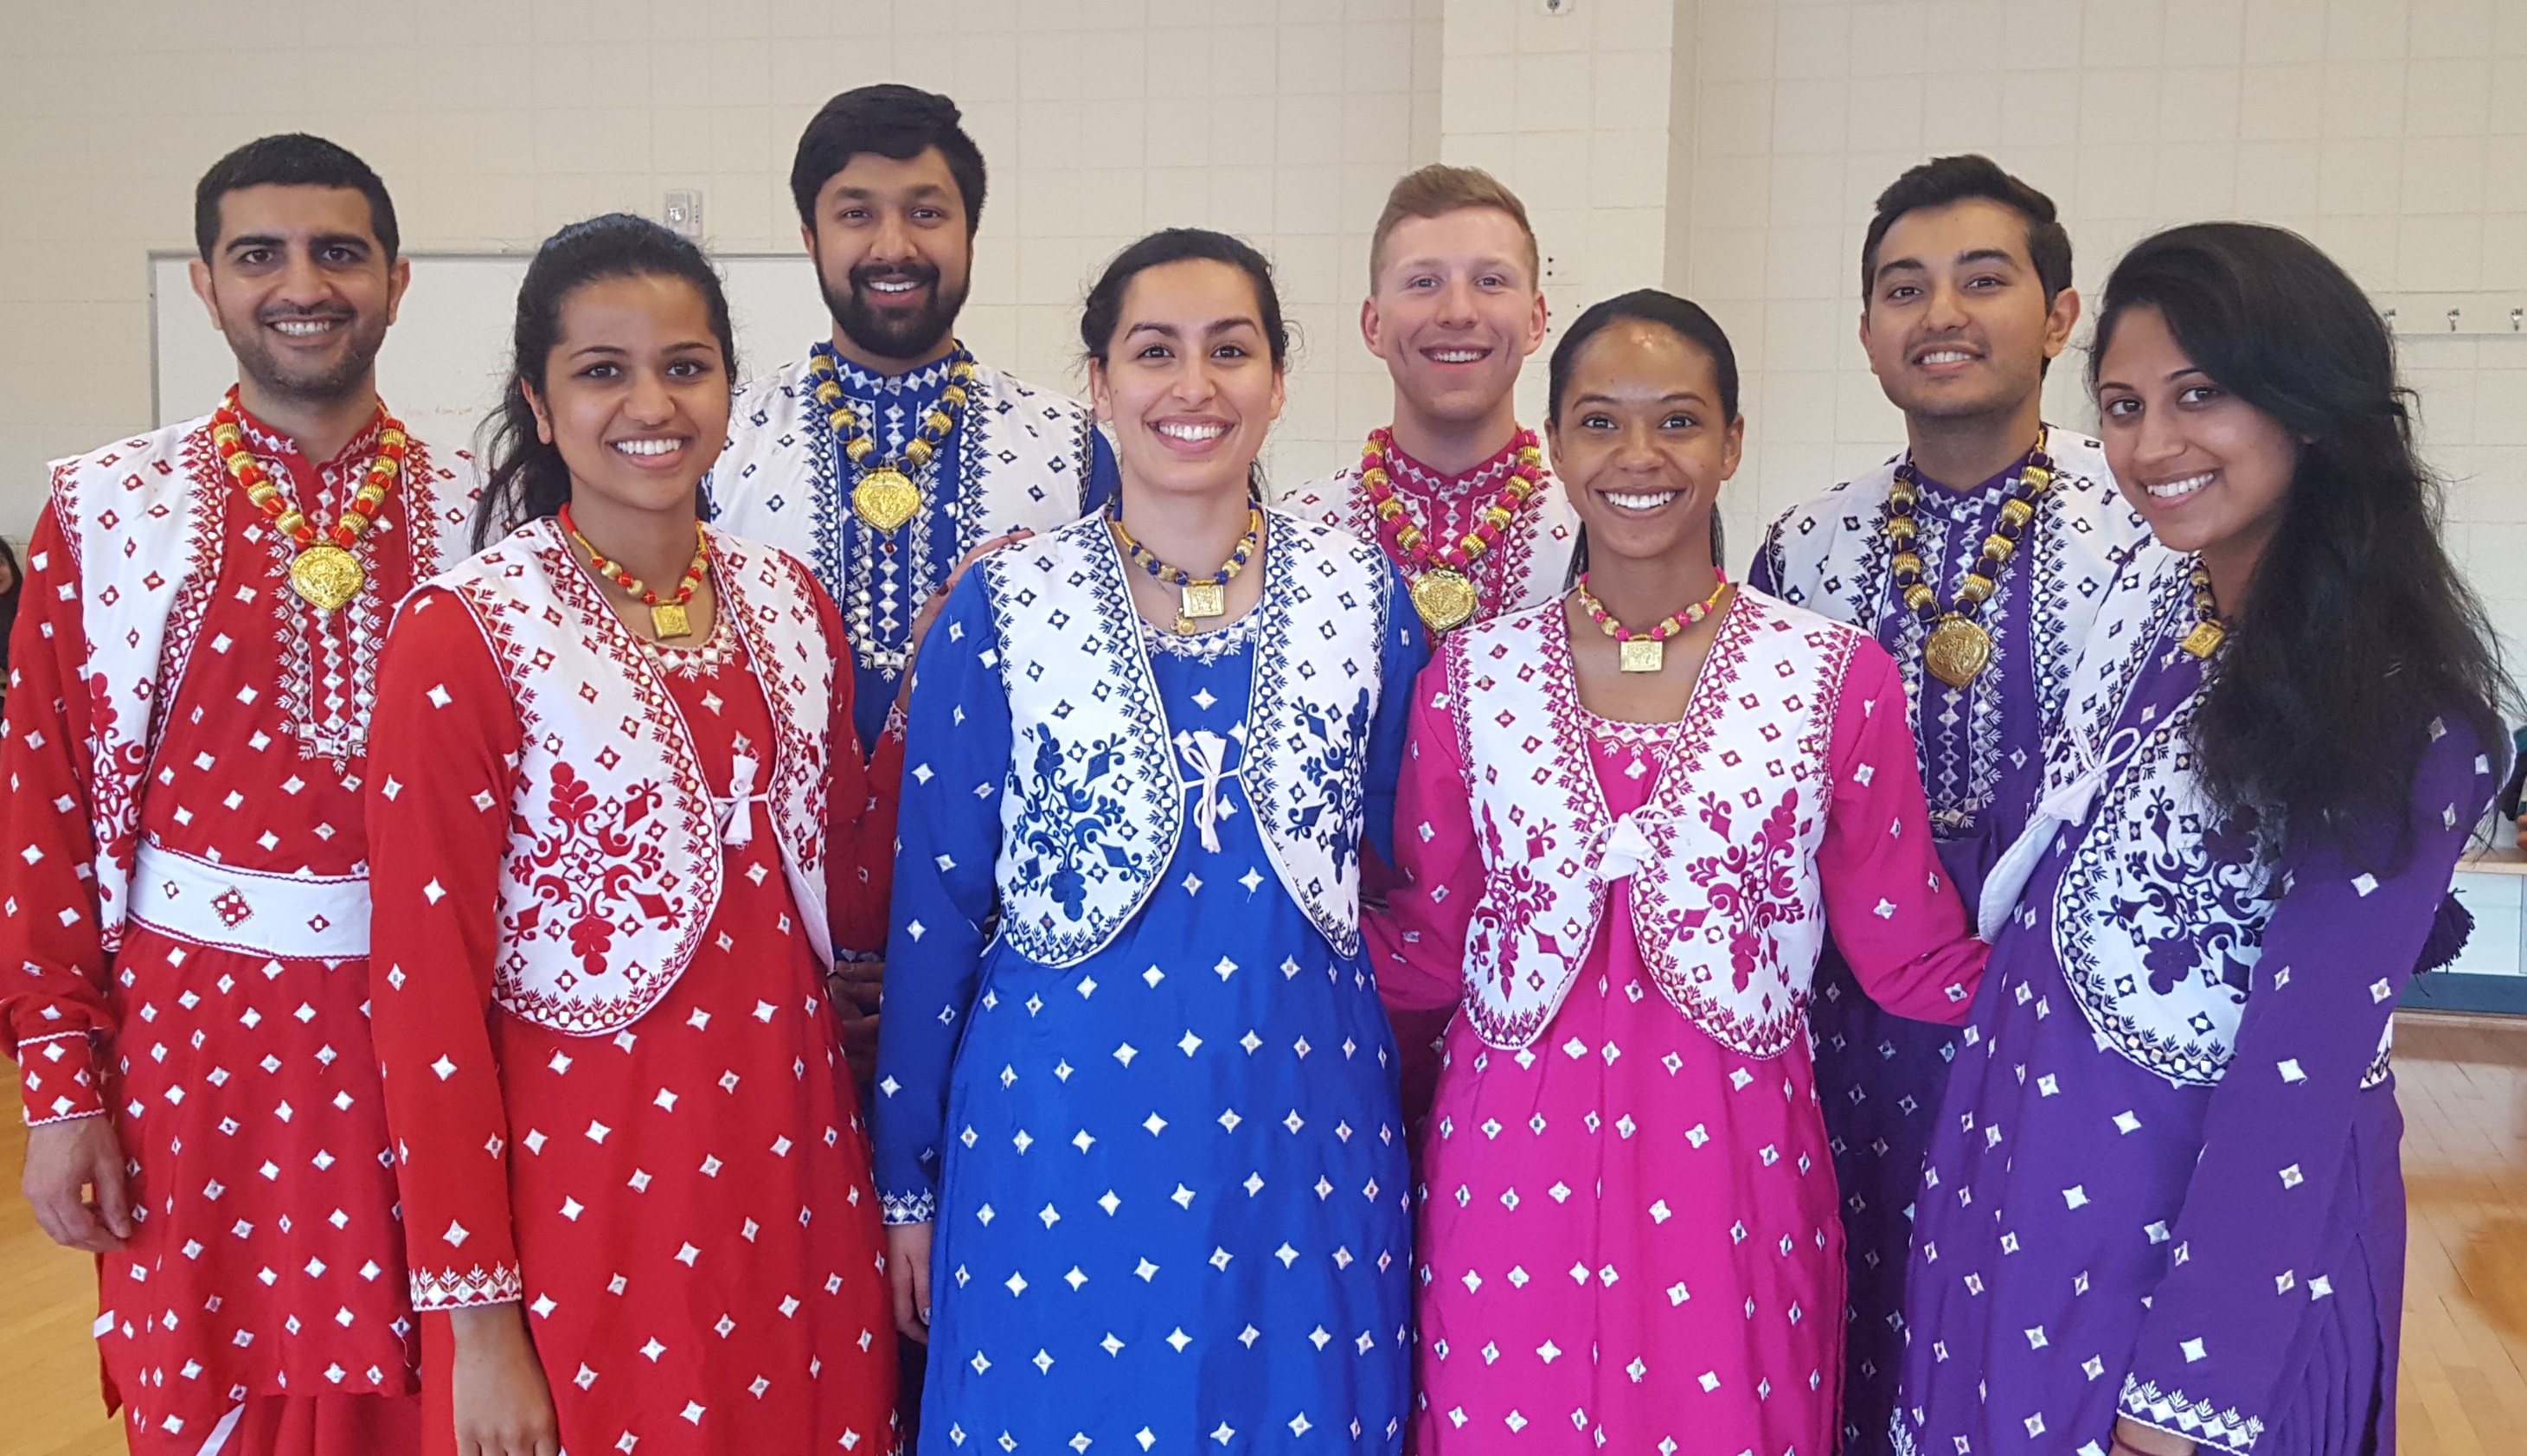 Group of Bhangra dancers